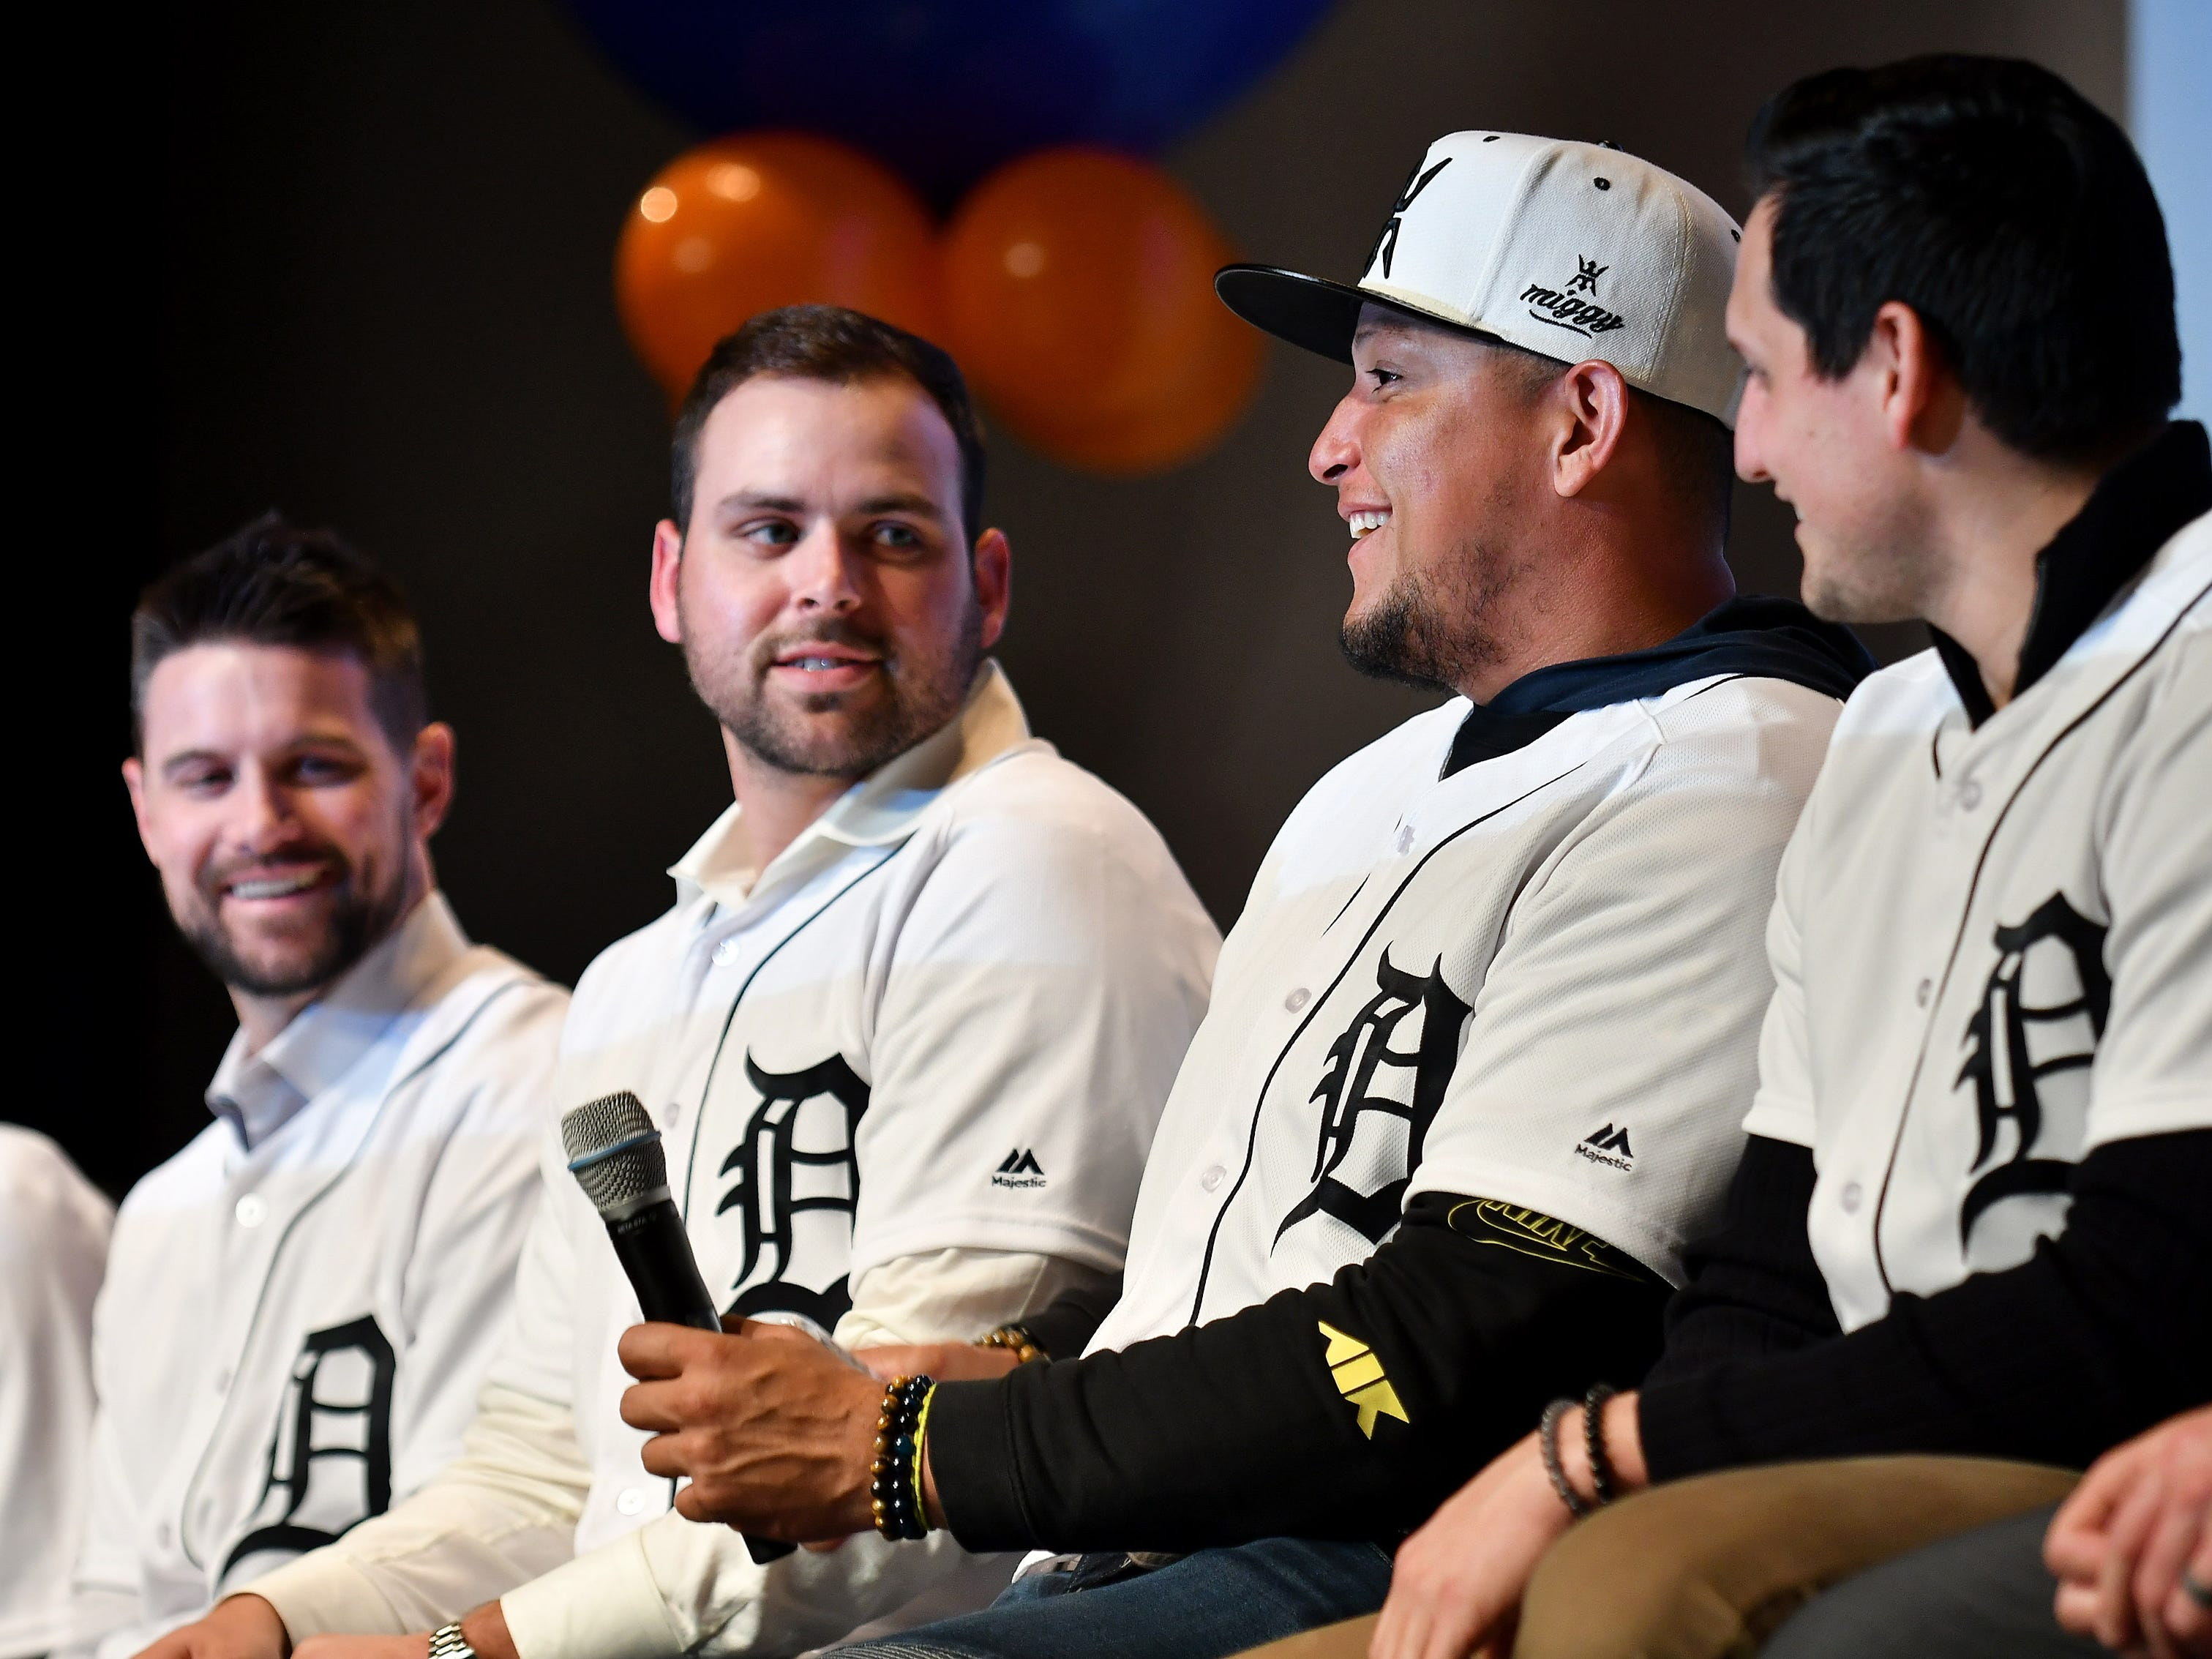 Tigers' Michael Fulmer, left, looks over while Miguel Cabrera smiles and pauses while answering a question as to how many home runs he has hit in his career (465) at a kids rally at Novi High School.